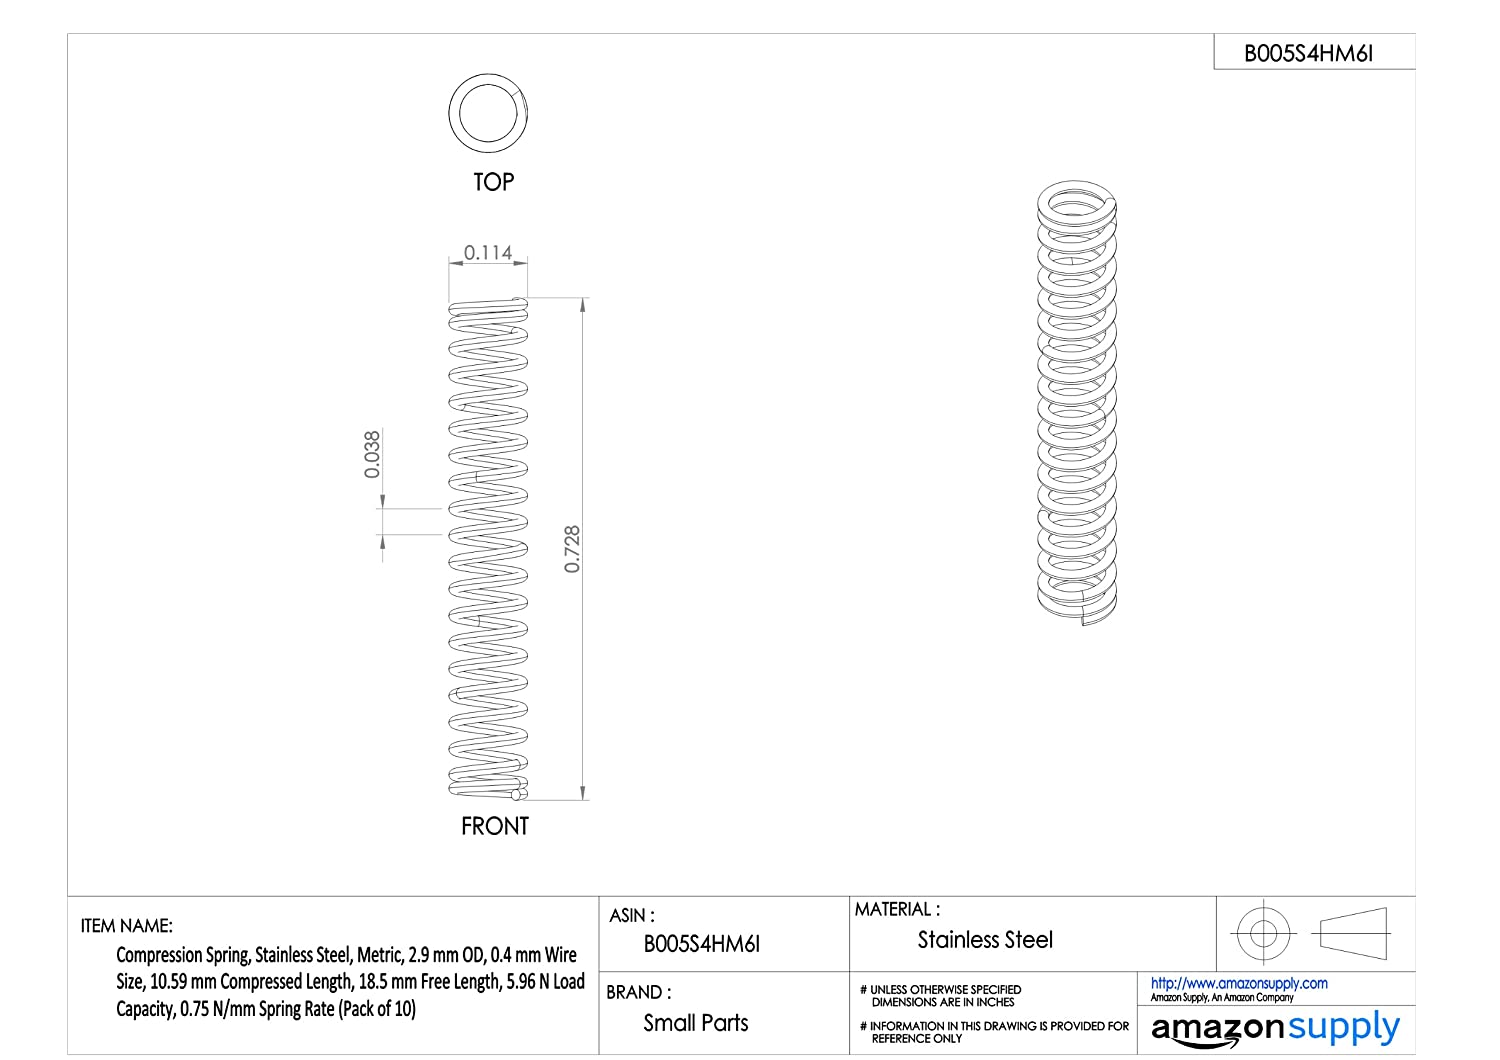 0.75 N//mm Spring Rate 10.59 mm Compressed Length Compression Spring 18.5 mm Free Length Pack of 10 Associated Spring Raymond D20940 Stainless Steel 5.96 N Load Capacity 0.4 mm Wire Size 2.9 mm OD Metric